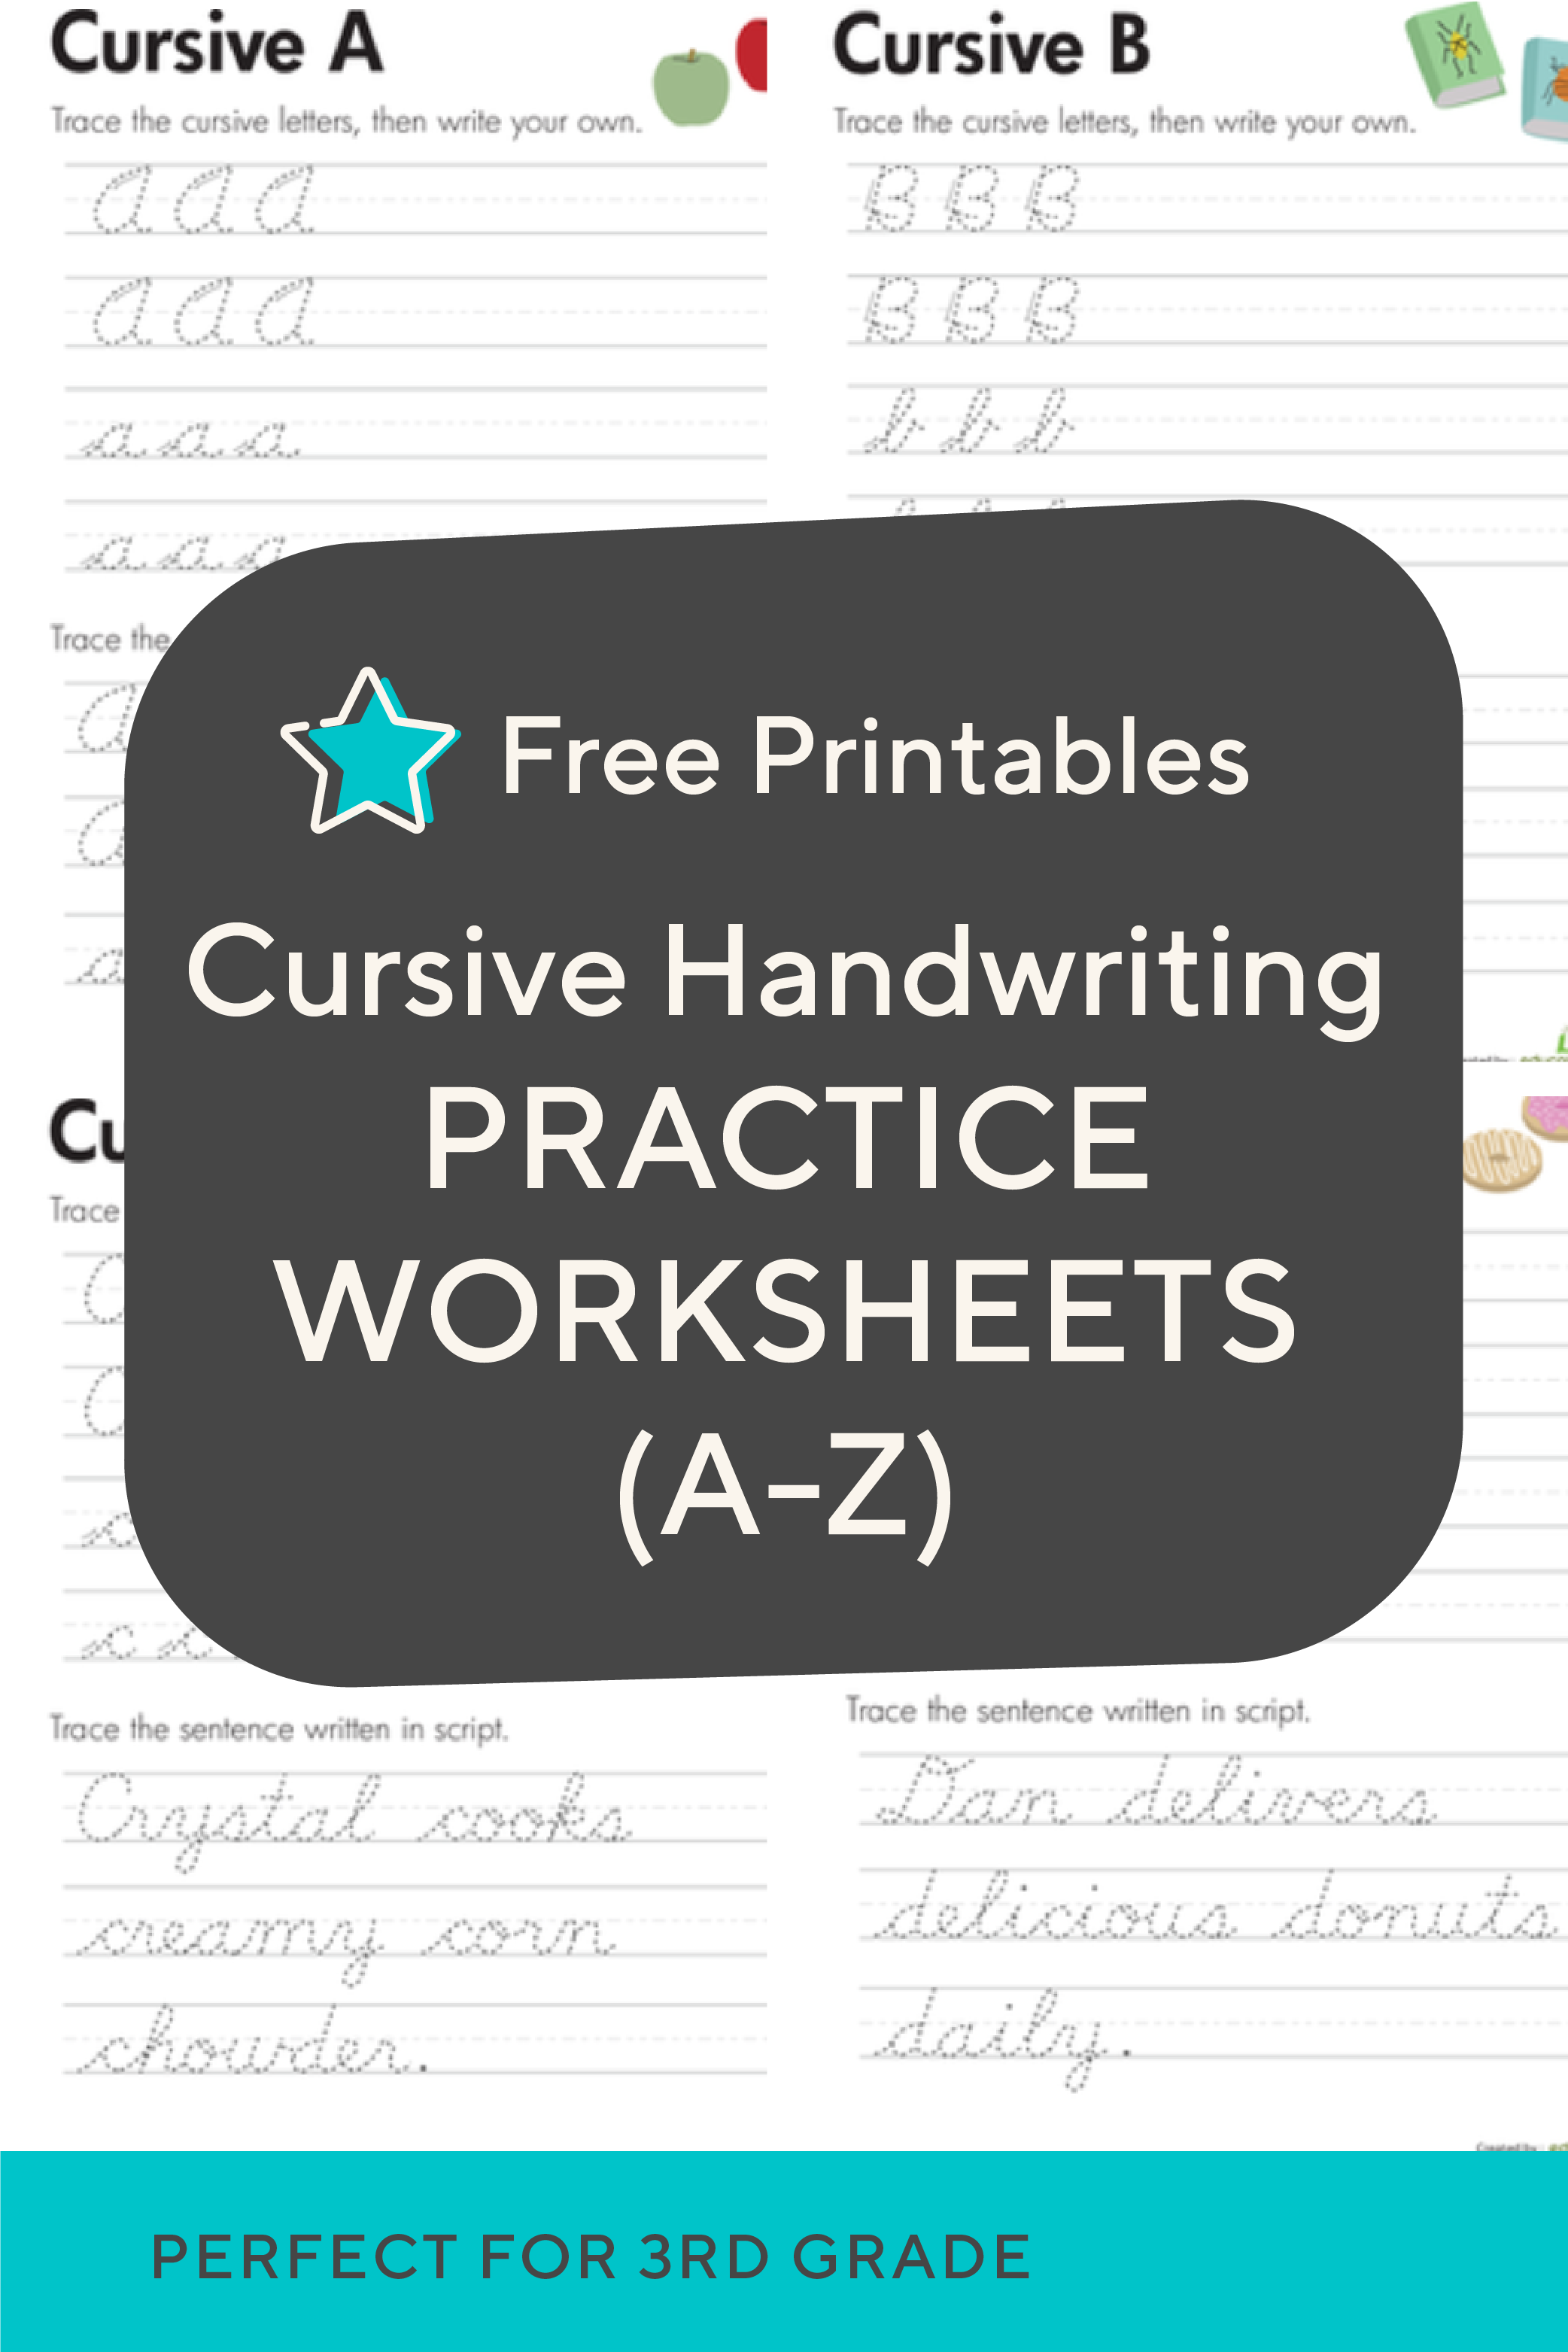 small resolution of Practice cursive letters A-Z with free cursive handwriting worksheets.  These a…   Cursive handwriting practice